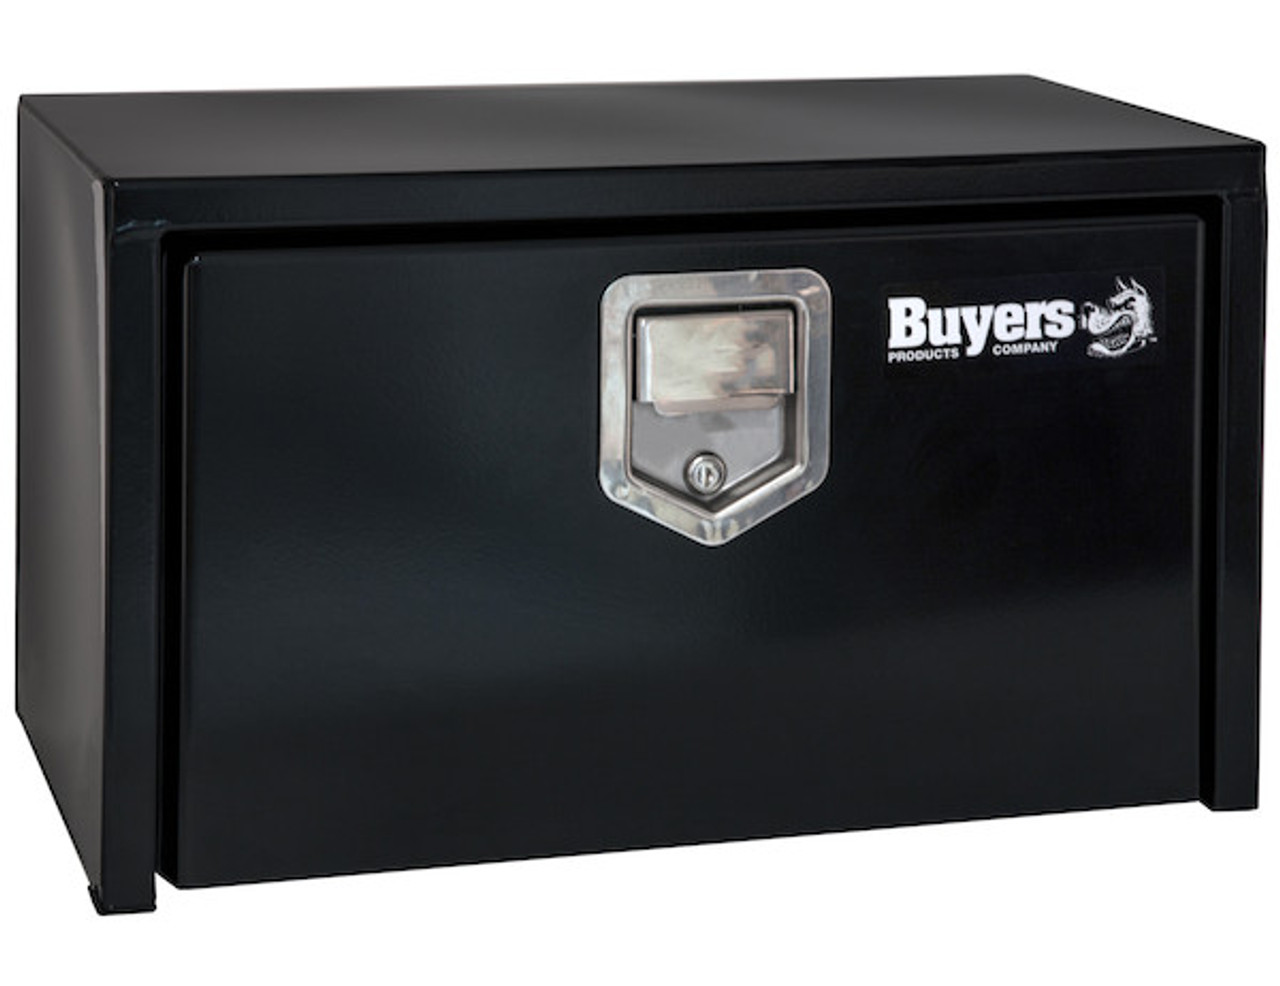 "1702100 BUYERS PRODUCTS BLACK STEEL UNDERBODY TRUCK TOOLBOX WITH PADDLE LATCH 18""HX18""DX24""W"